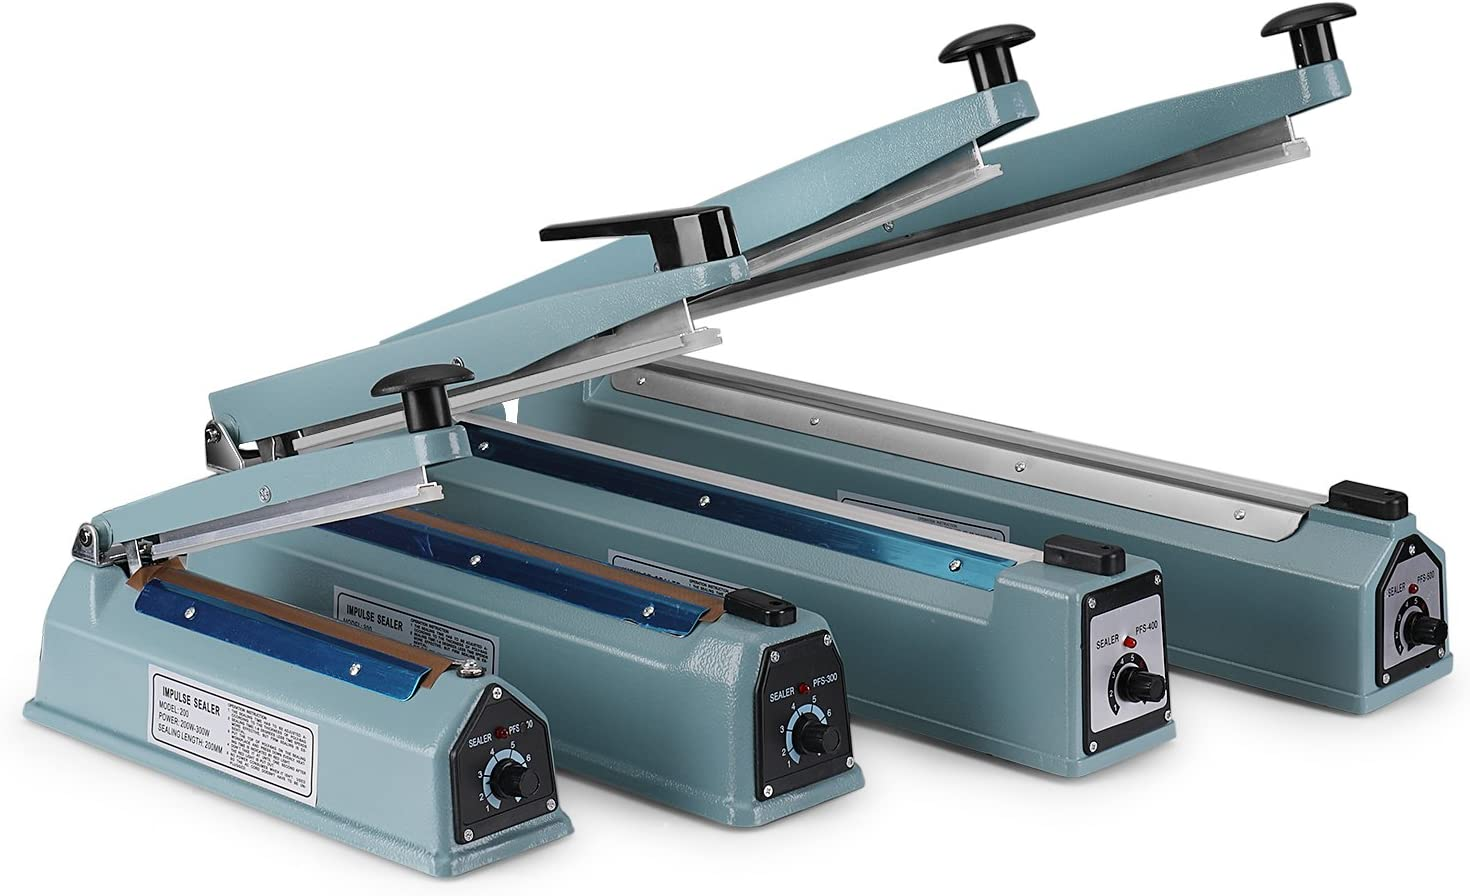 """Flexzion 8\"""" (200mm) Impulse Sealer 300w- Manual Plastic Poly Bag Heat Sealing Machine Closer Kit w/Adjustable Timer, Portable with Free Replacement Element Grip and Teflon Tape 71Uu-gFnZwL"""